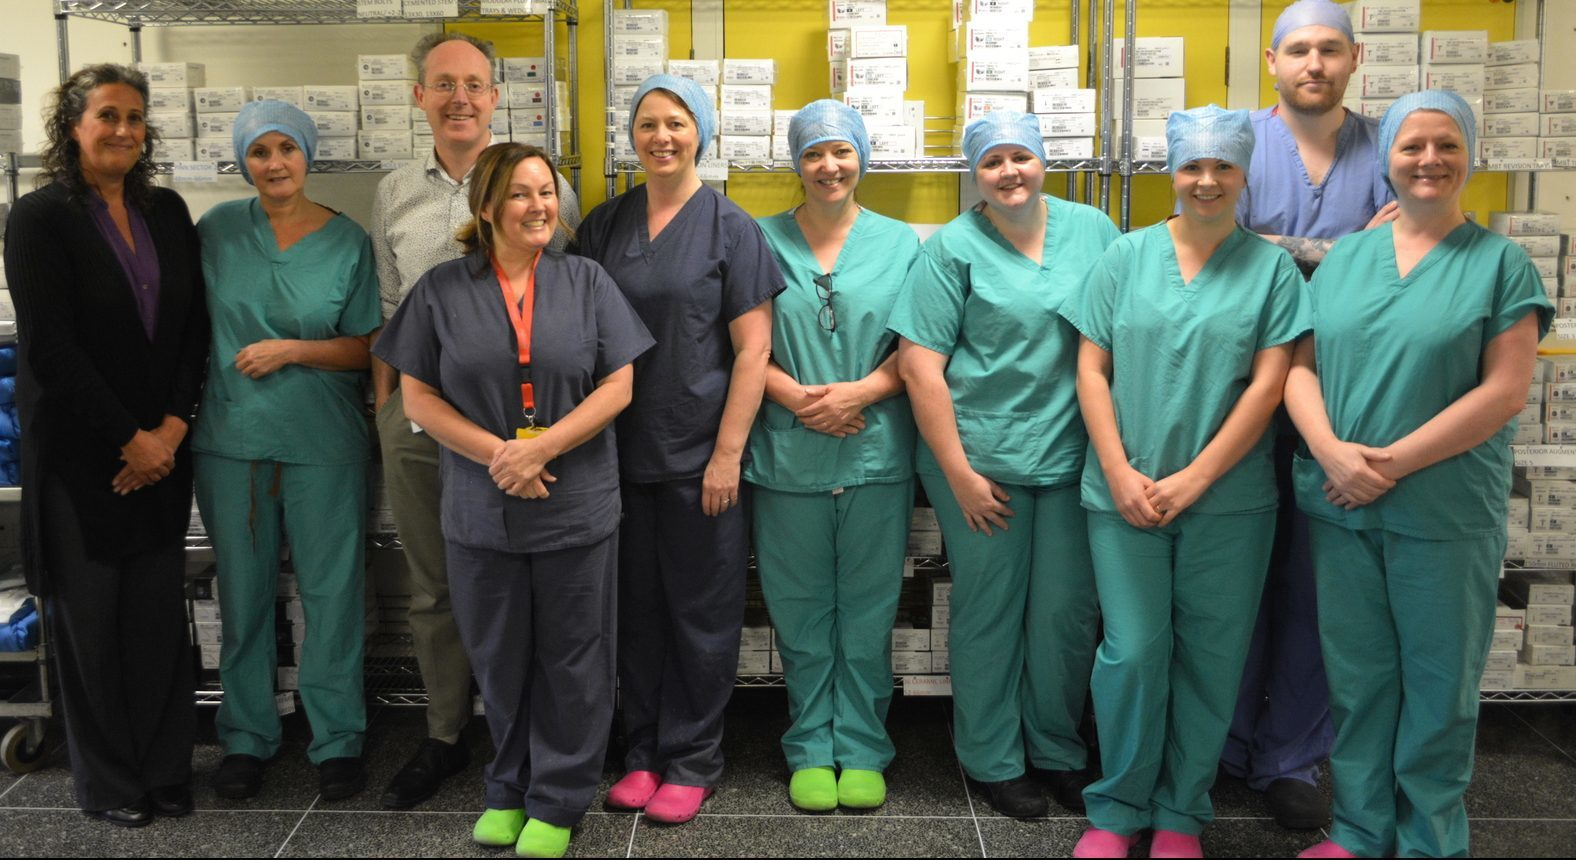 The orthopaedic surgery team